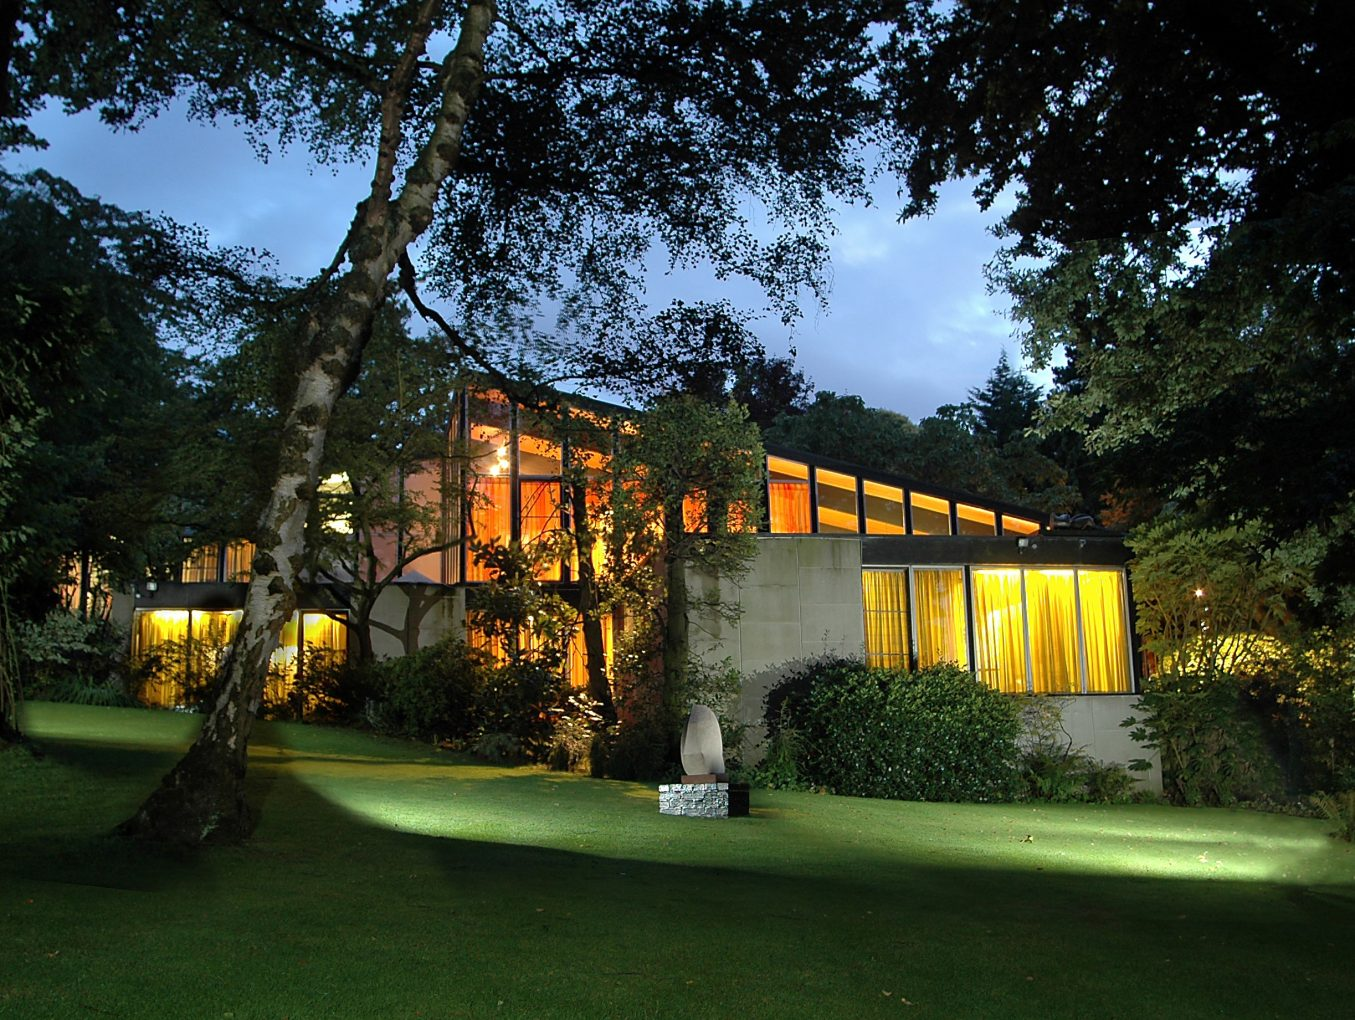 Iconic interior design in Surrey:  Visiting the mid-century modern interiors of Surrey's Stanley Picker House and The Homewood